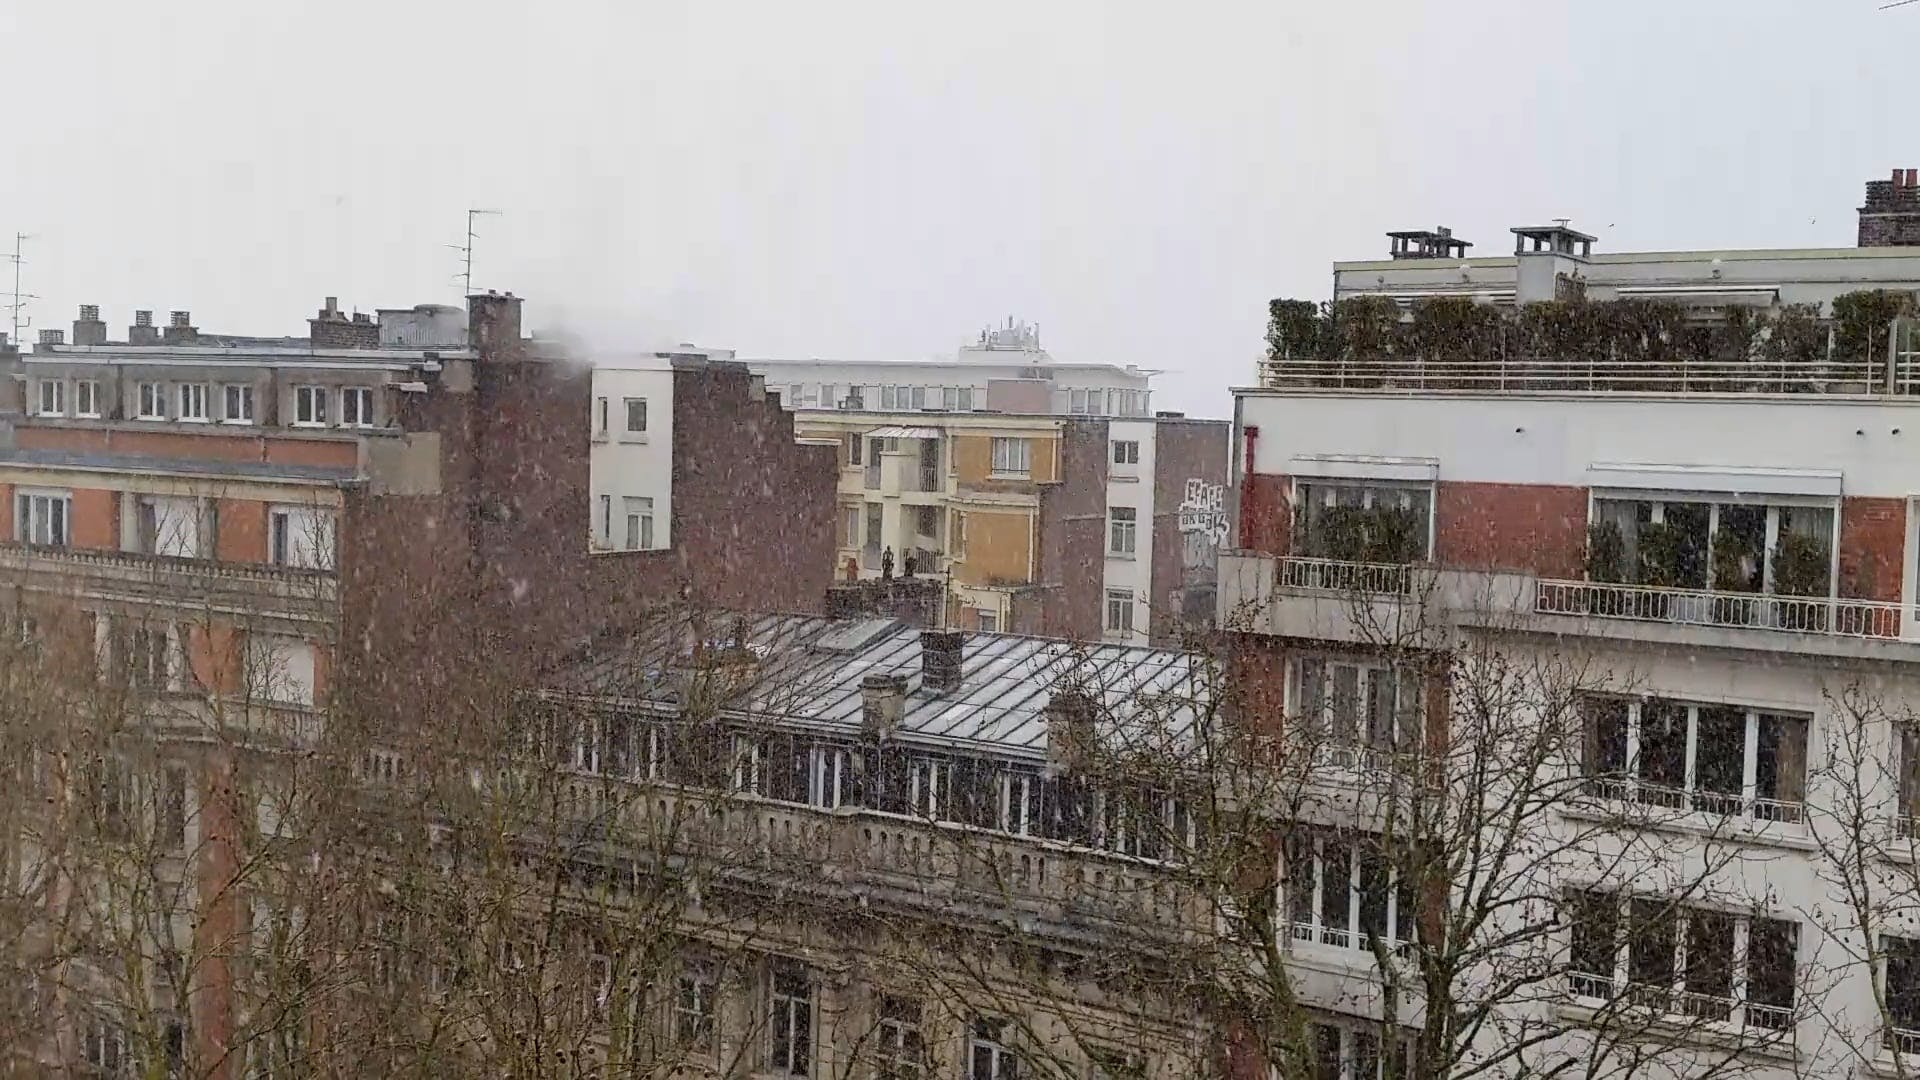 Snowfall In The City